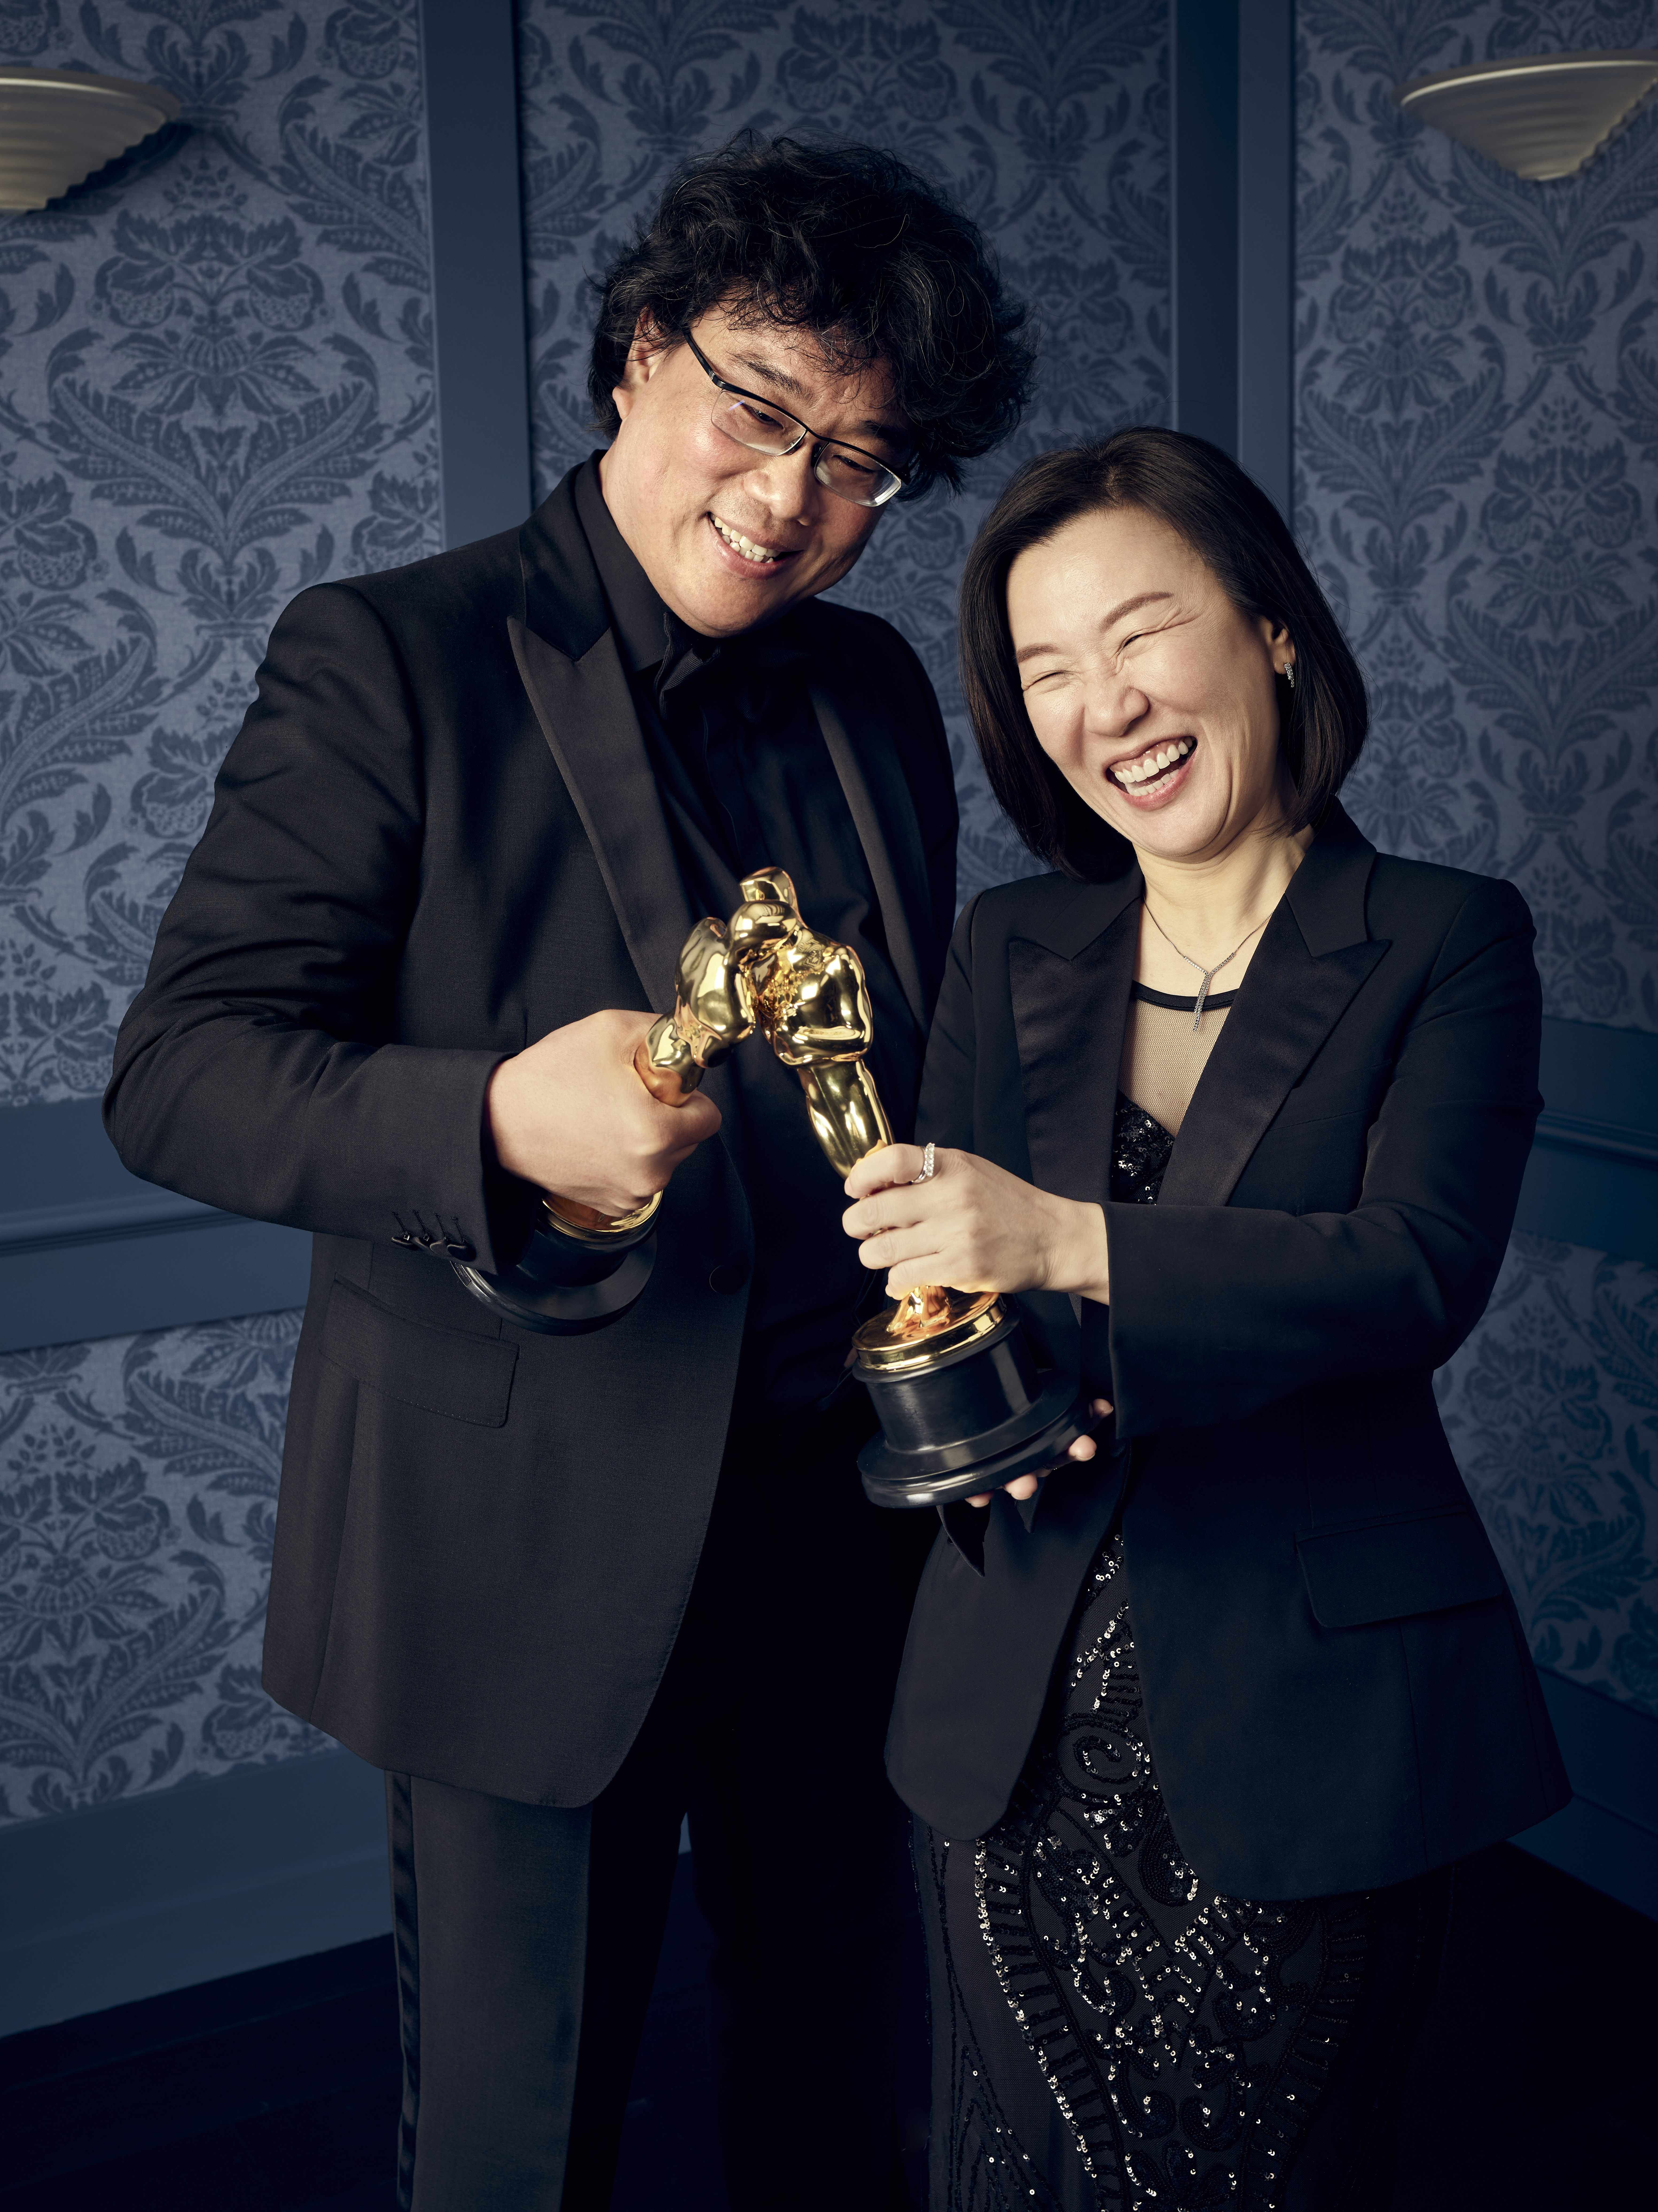 Best Picture BONG JOON-HO and KWARK SIN AE for PARASITE